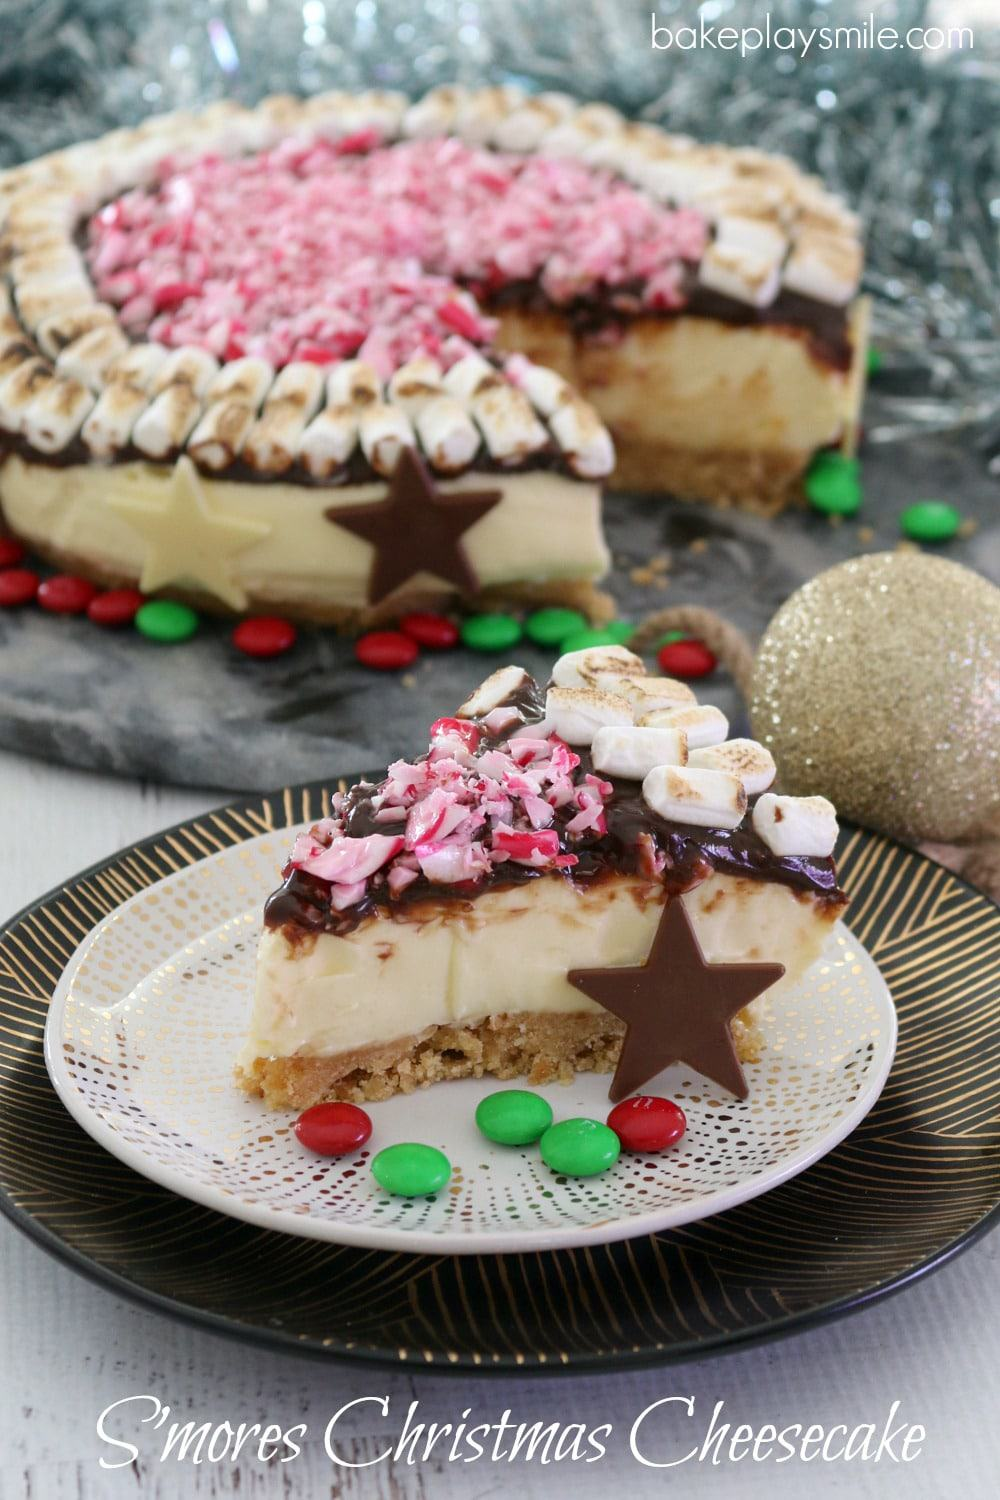 A slice of S'mores Christmas Cheesecake, decorated with toasted marshmallows and crushed candy canes, on a plate